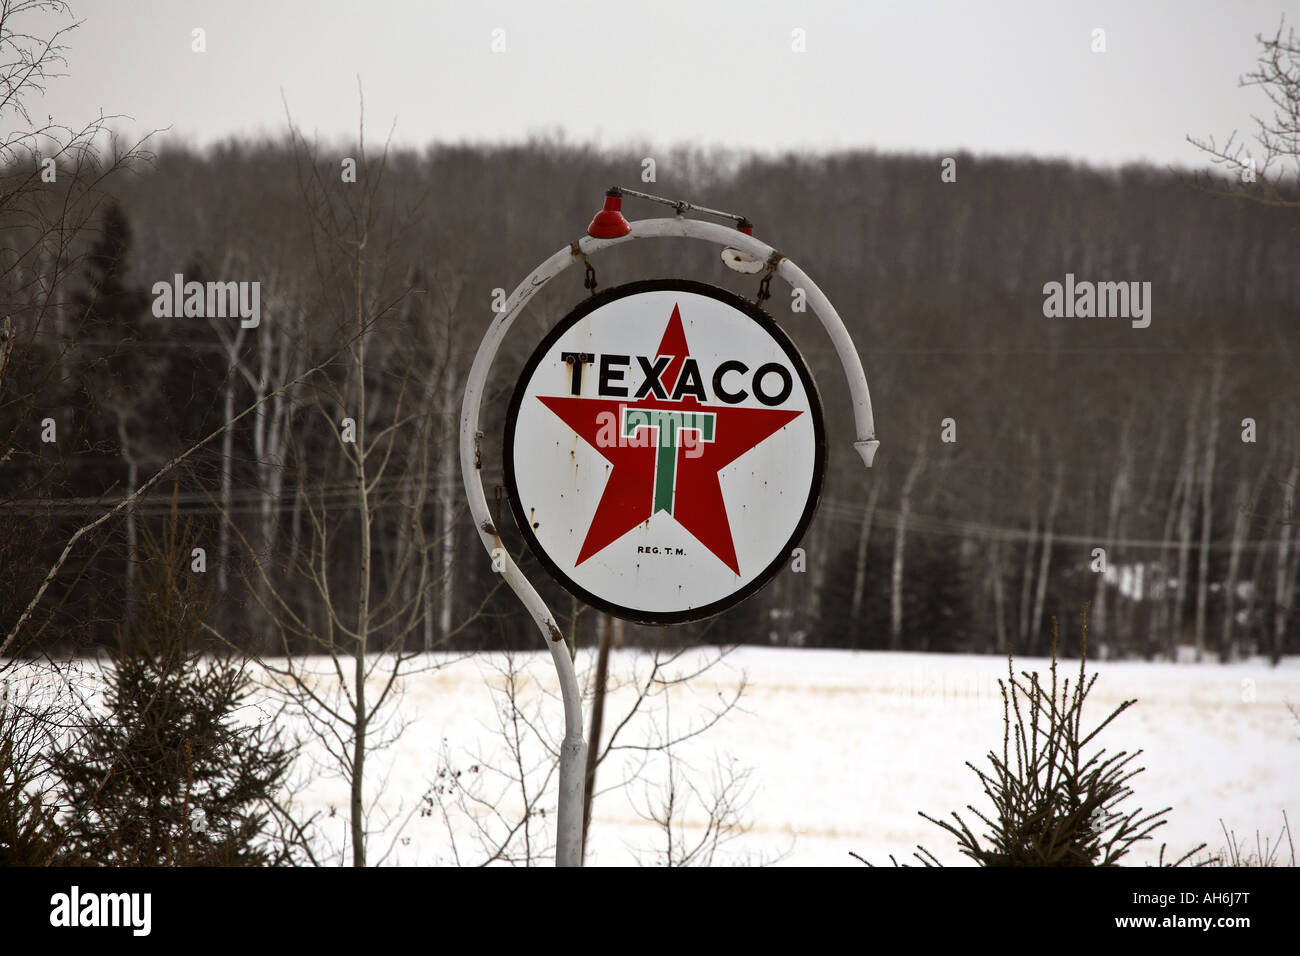 Old Texaco Sign Stock Photos & Old Texaco Sign Stock Images